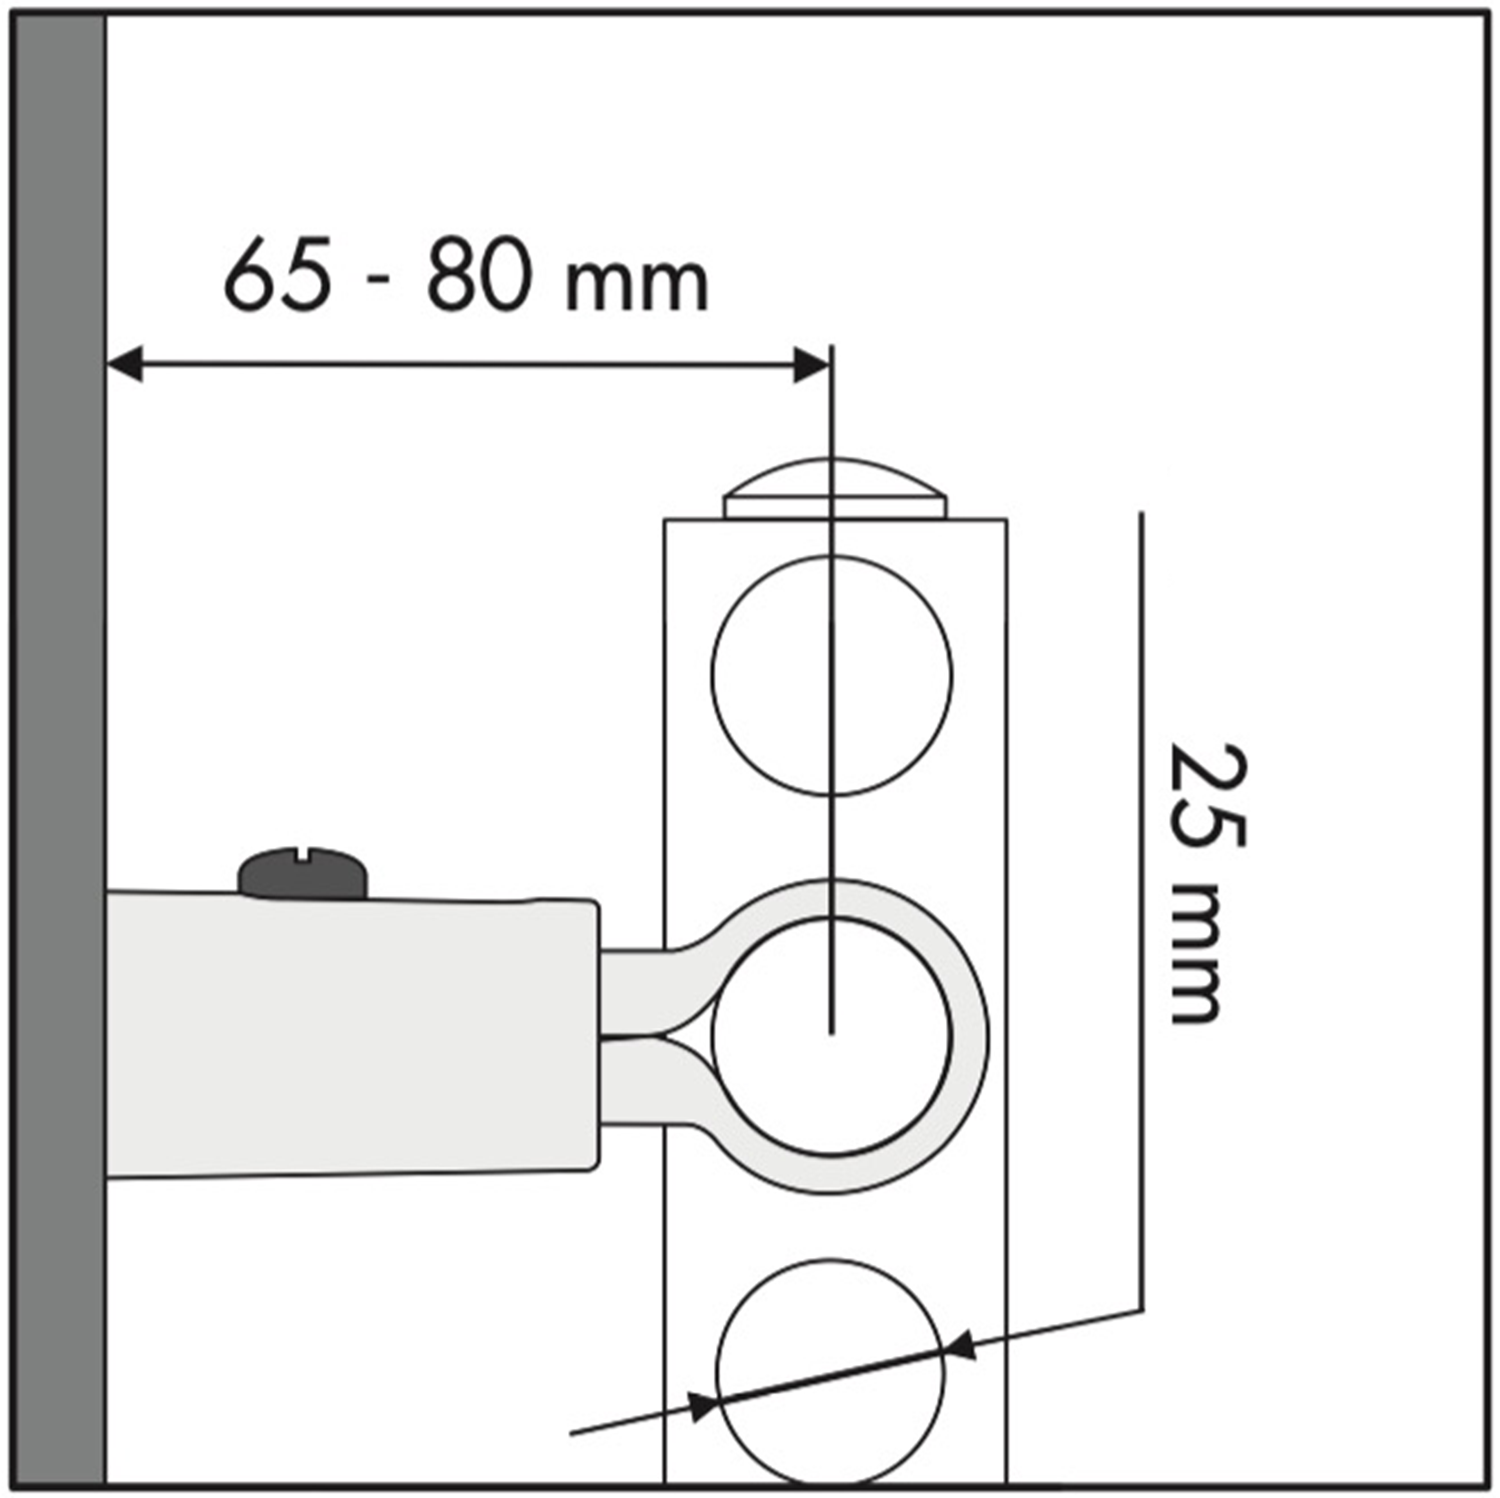 Clamp Towel Rail Bracket Wall Projection Diagram